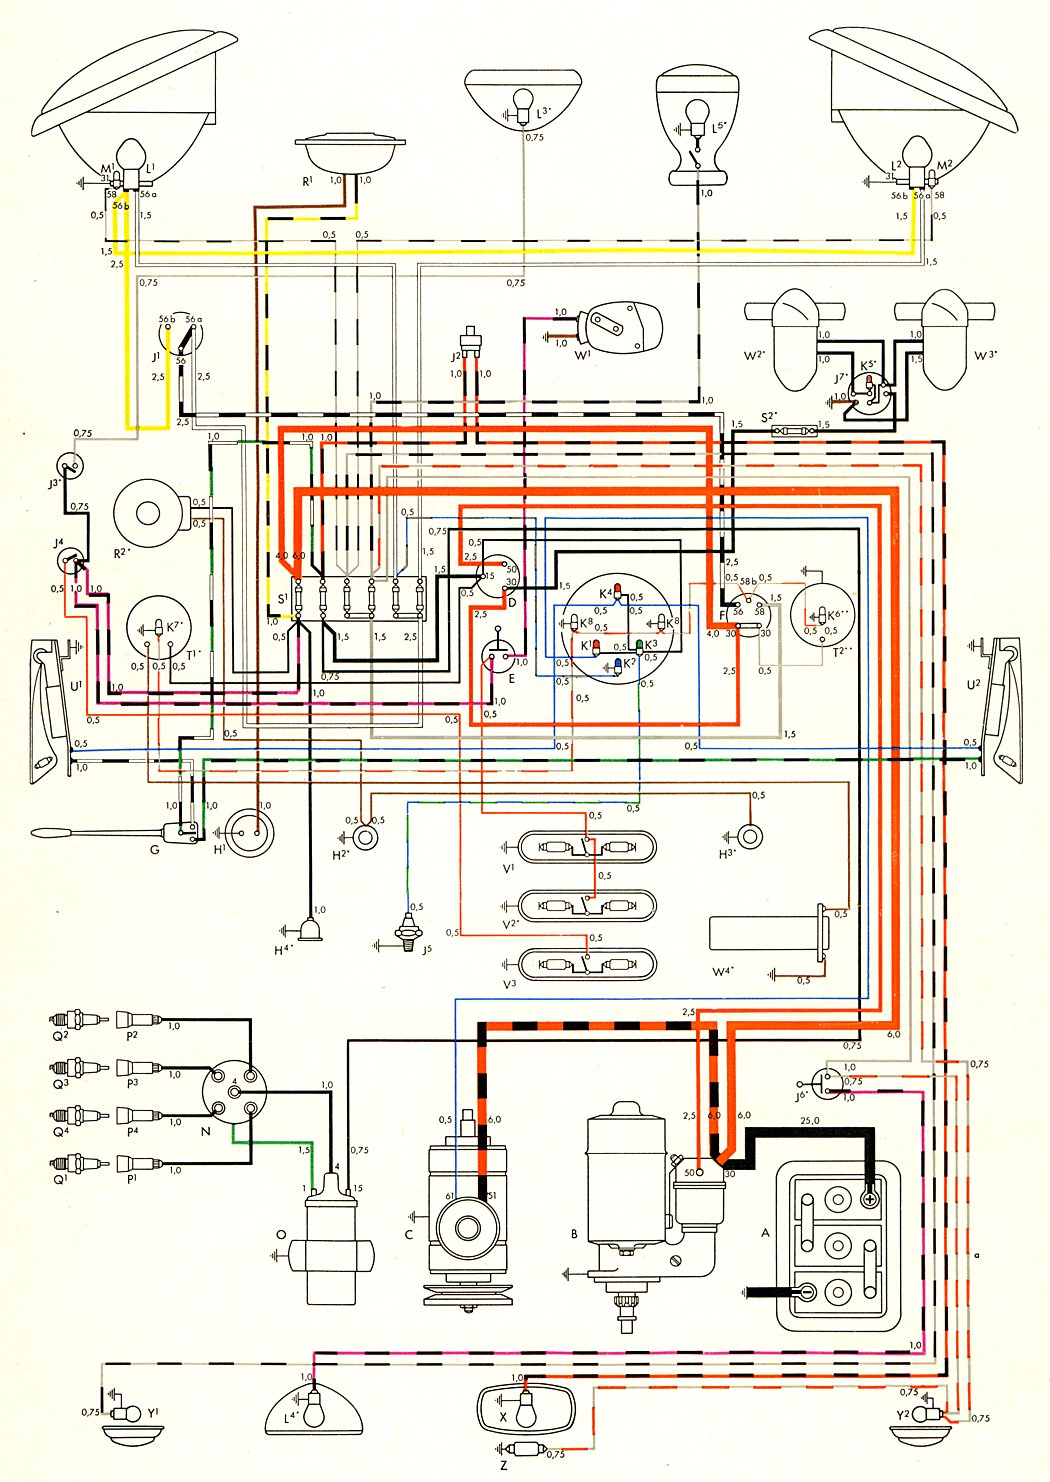 vw beetle wiring diagram 3 way switch with 2 lights bug engine free image for user